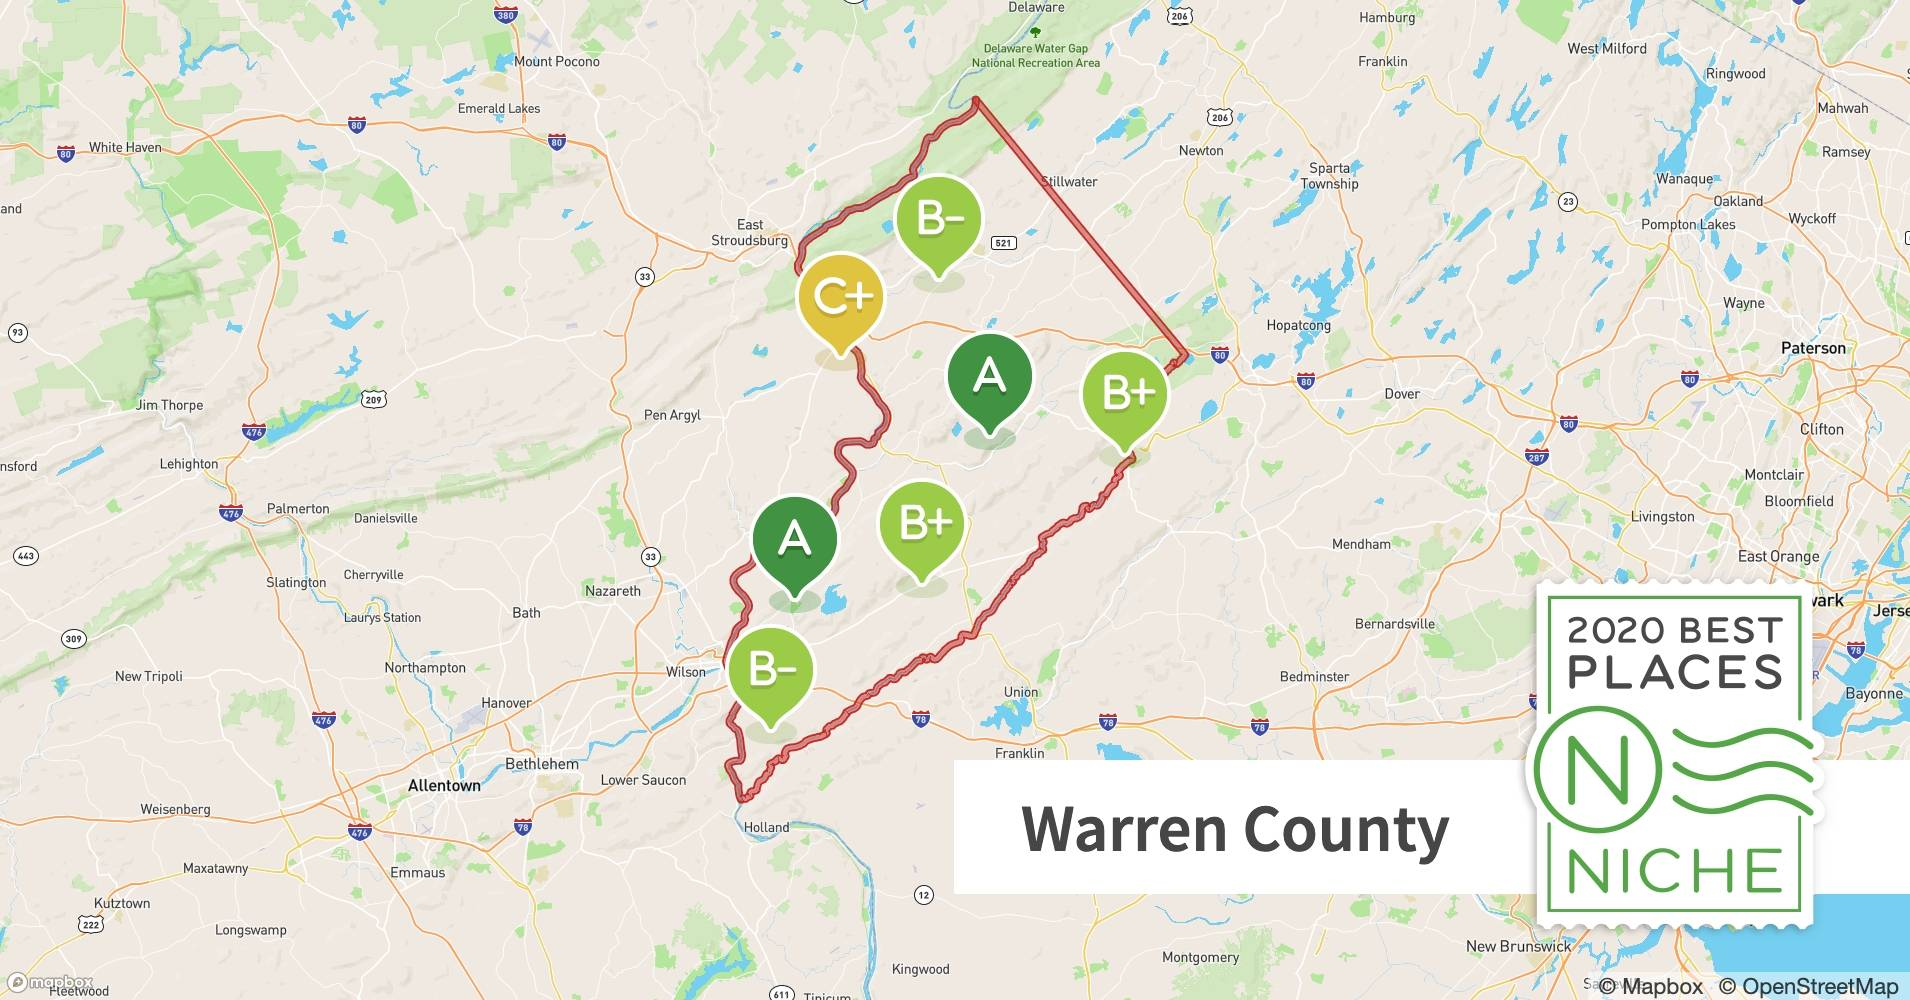 2020 Best Places To Live In Warren County Nj Niche